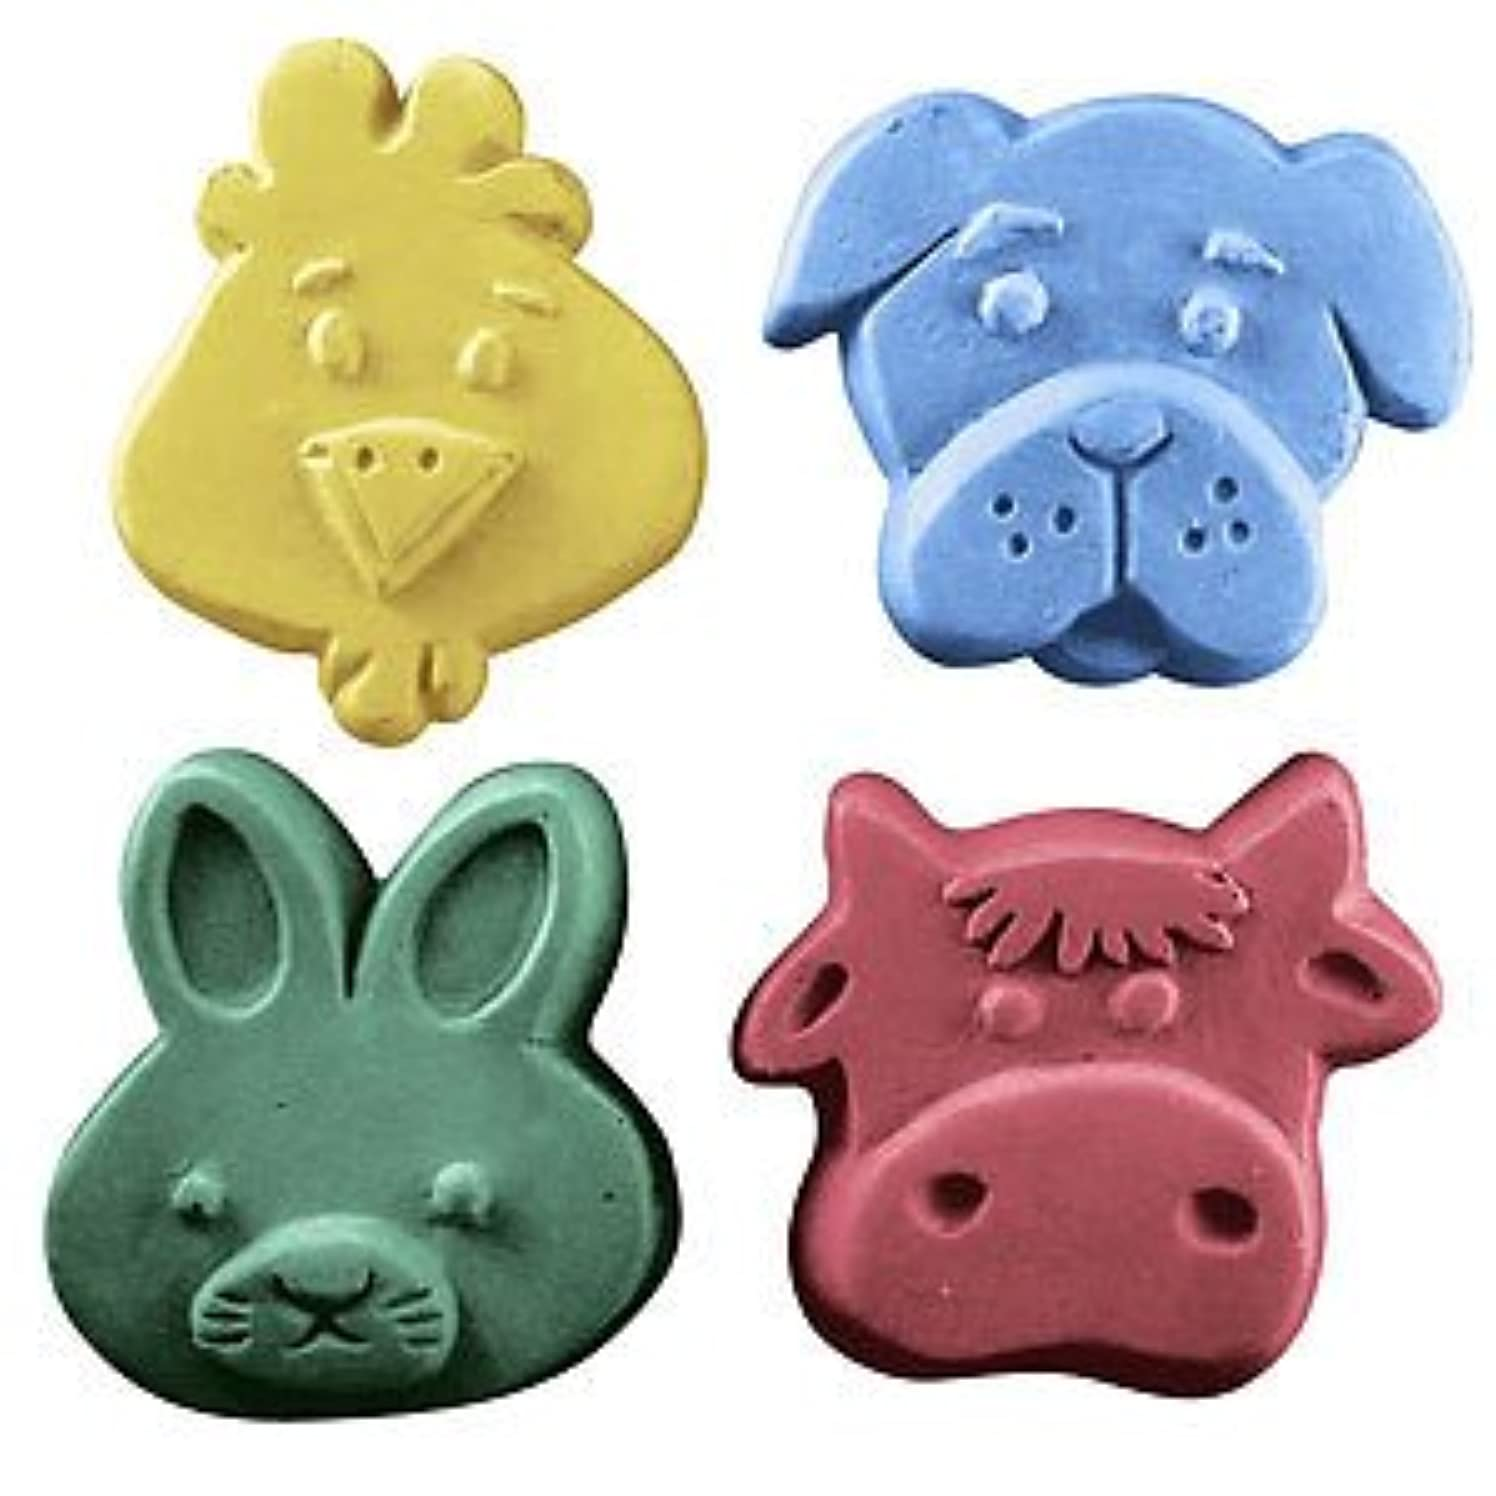 Milky Way Kids Critters 3 Soap Mold Tray - Melt and Pour - Cold Process - Clear PVC - Not Silicone - MW 111